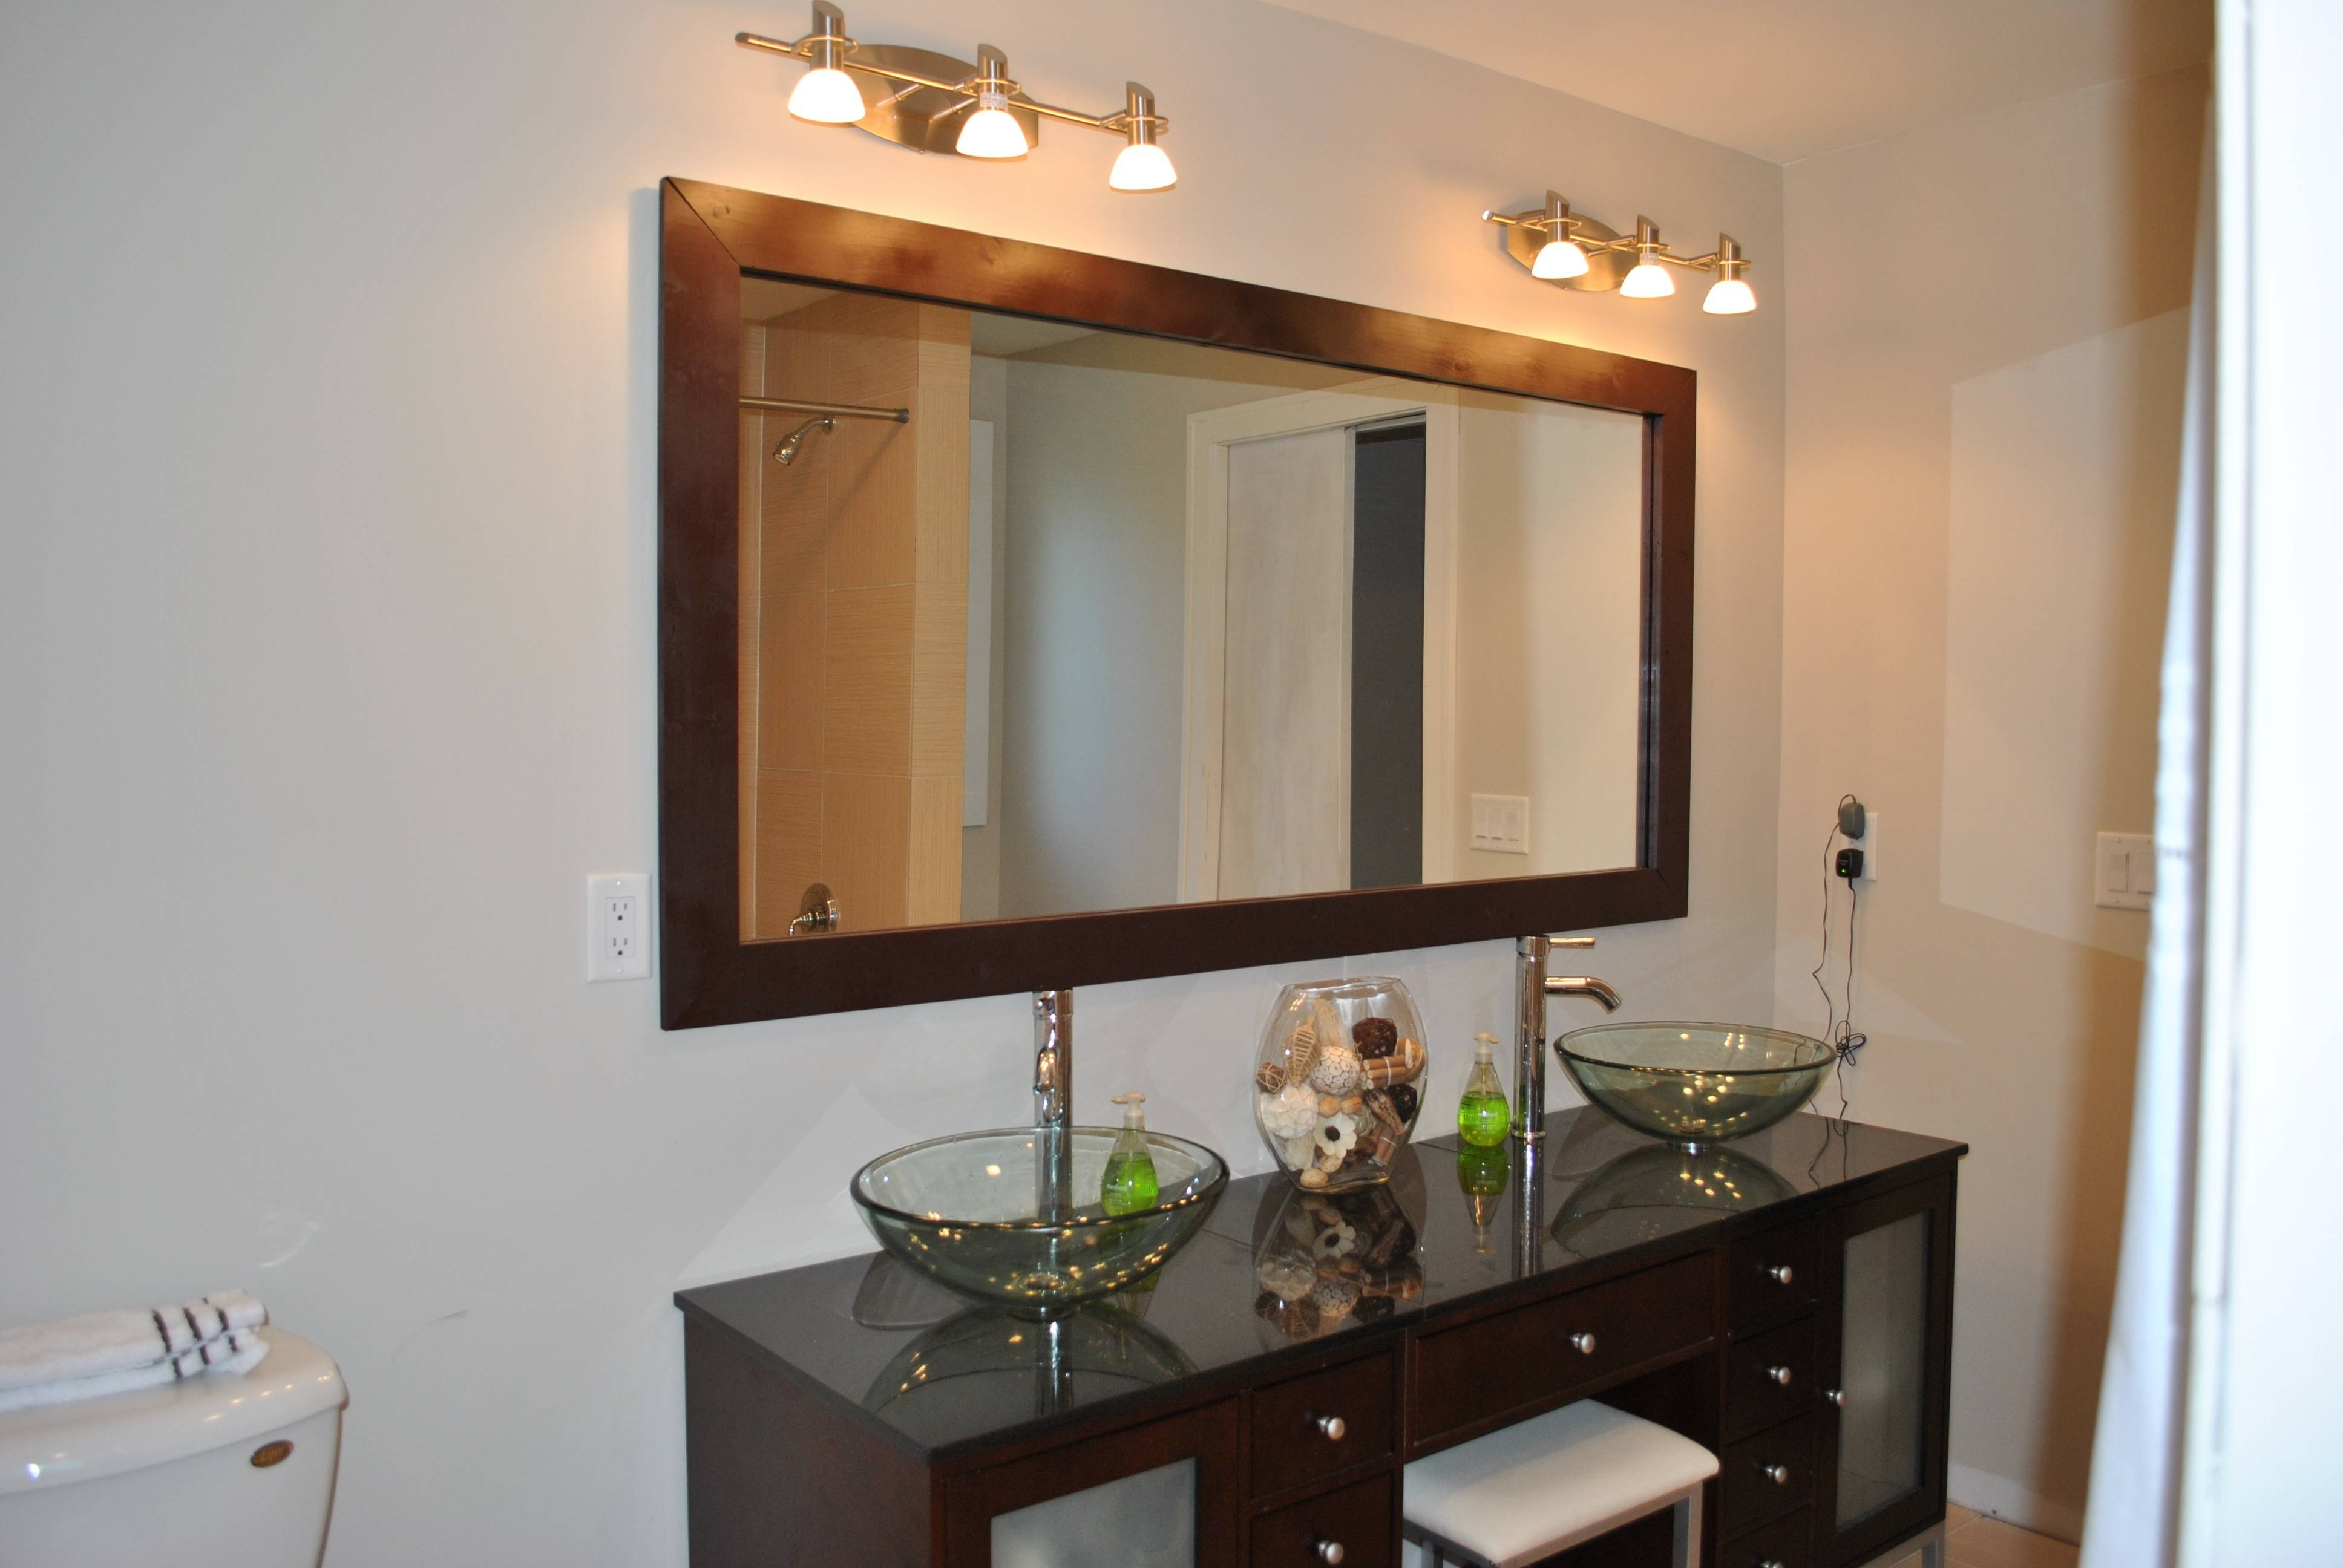 Bathroom : Furniture Bathroom Wall Mirror And Bath And Bathroom in Large Brown Mirrors (Image 2 of 15)